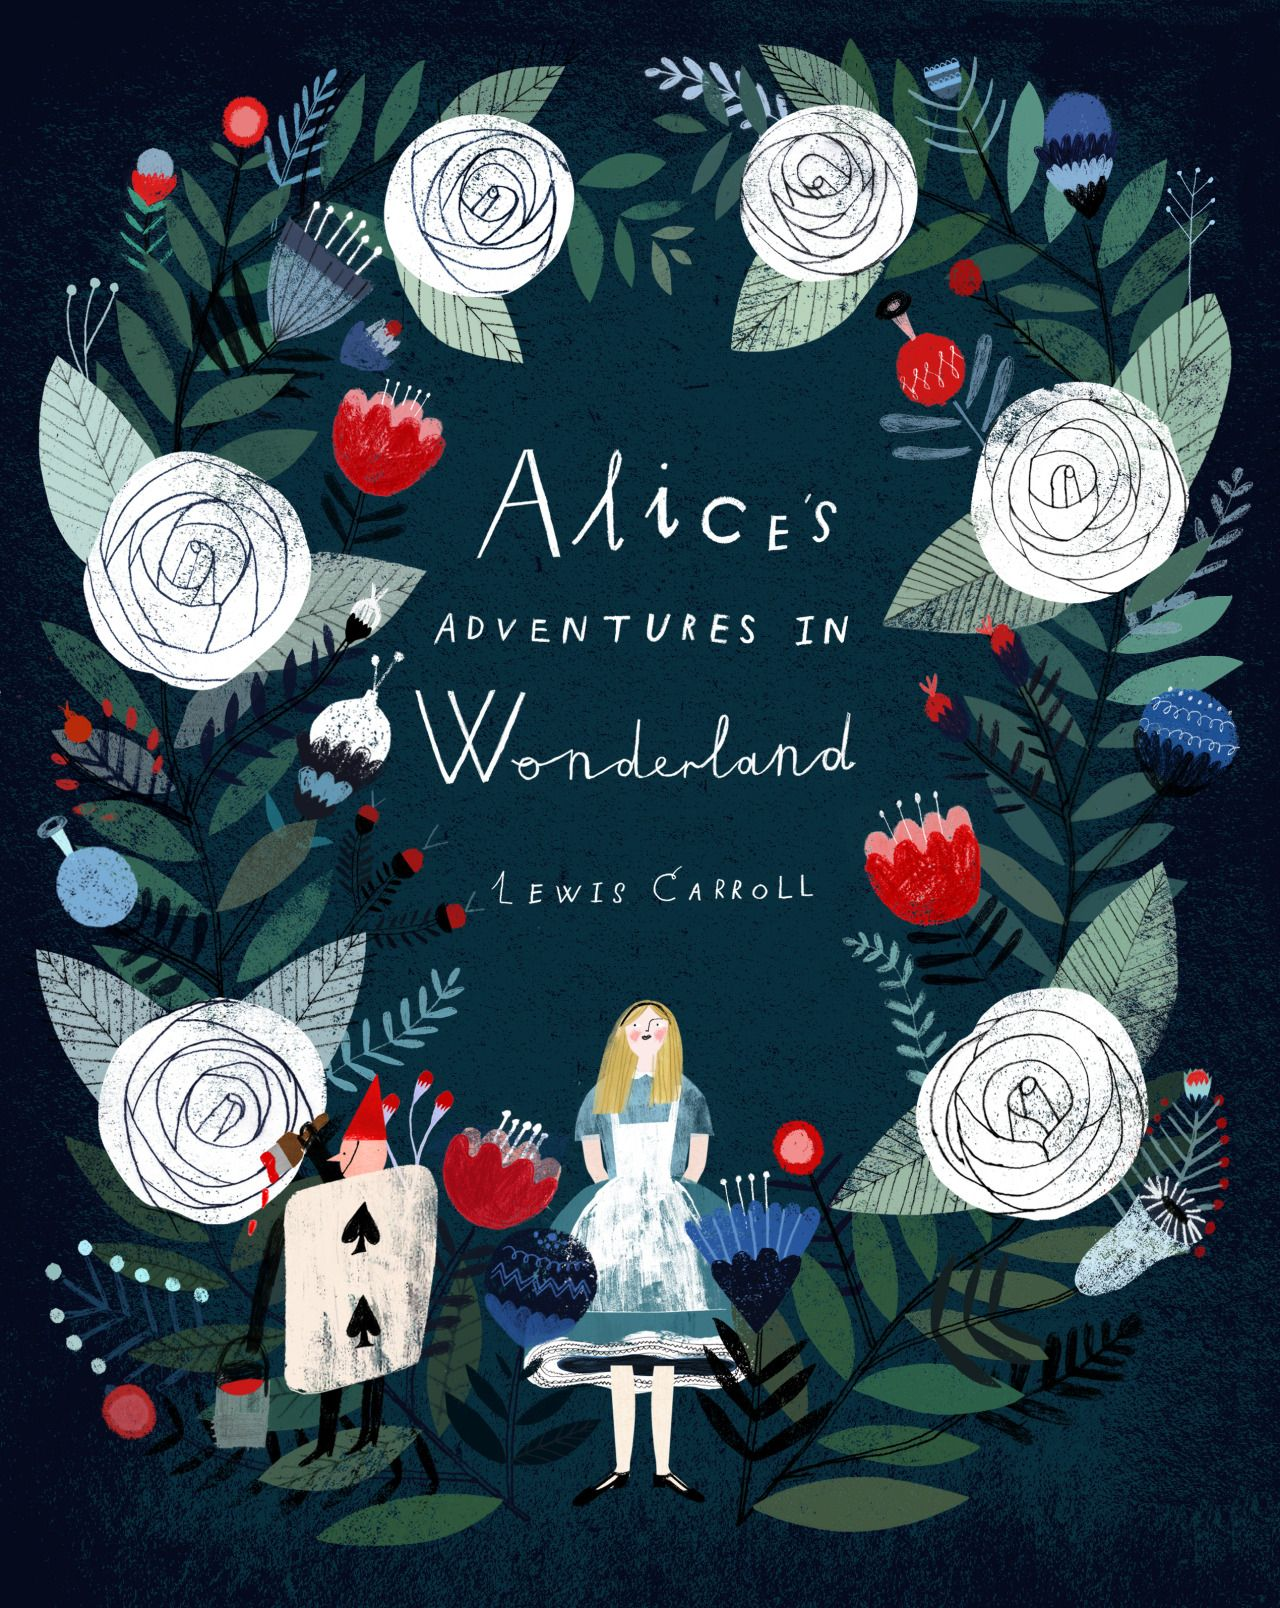 Book Cover Art Quotes : Alice s adventures in wonderland by lewis carroll design